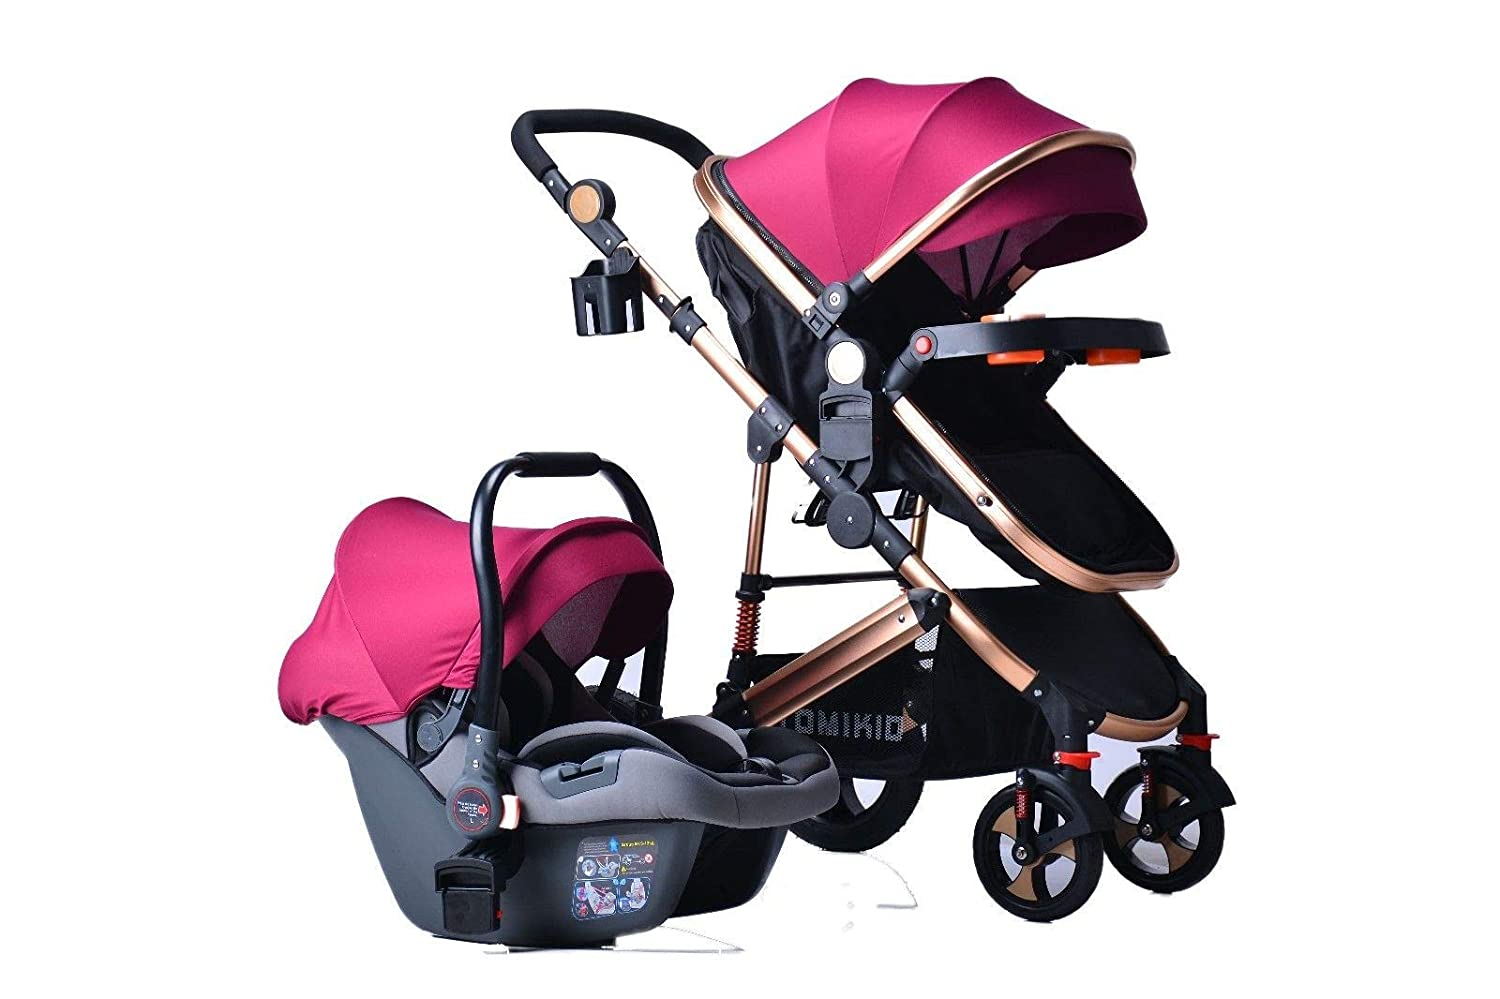 3 in 1 Combi Stroller Buggy Baby Child Pushchair Free Car Seat Reverse or Forward Facing Rain Cover Mosquito Net Bottle Holder Foldable FootMuff with Free Car Seat (Black with car Seat) Tomi